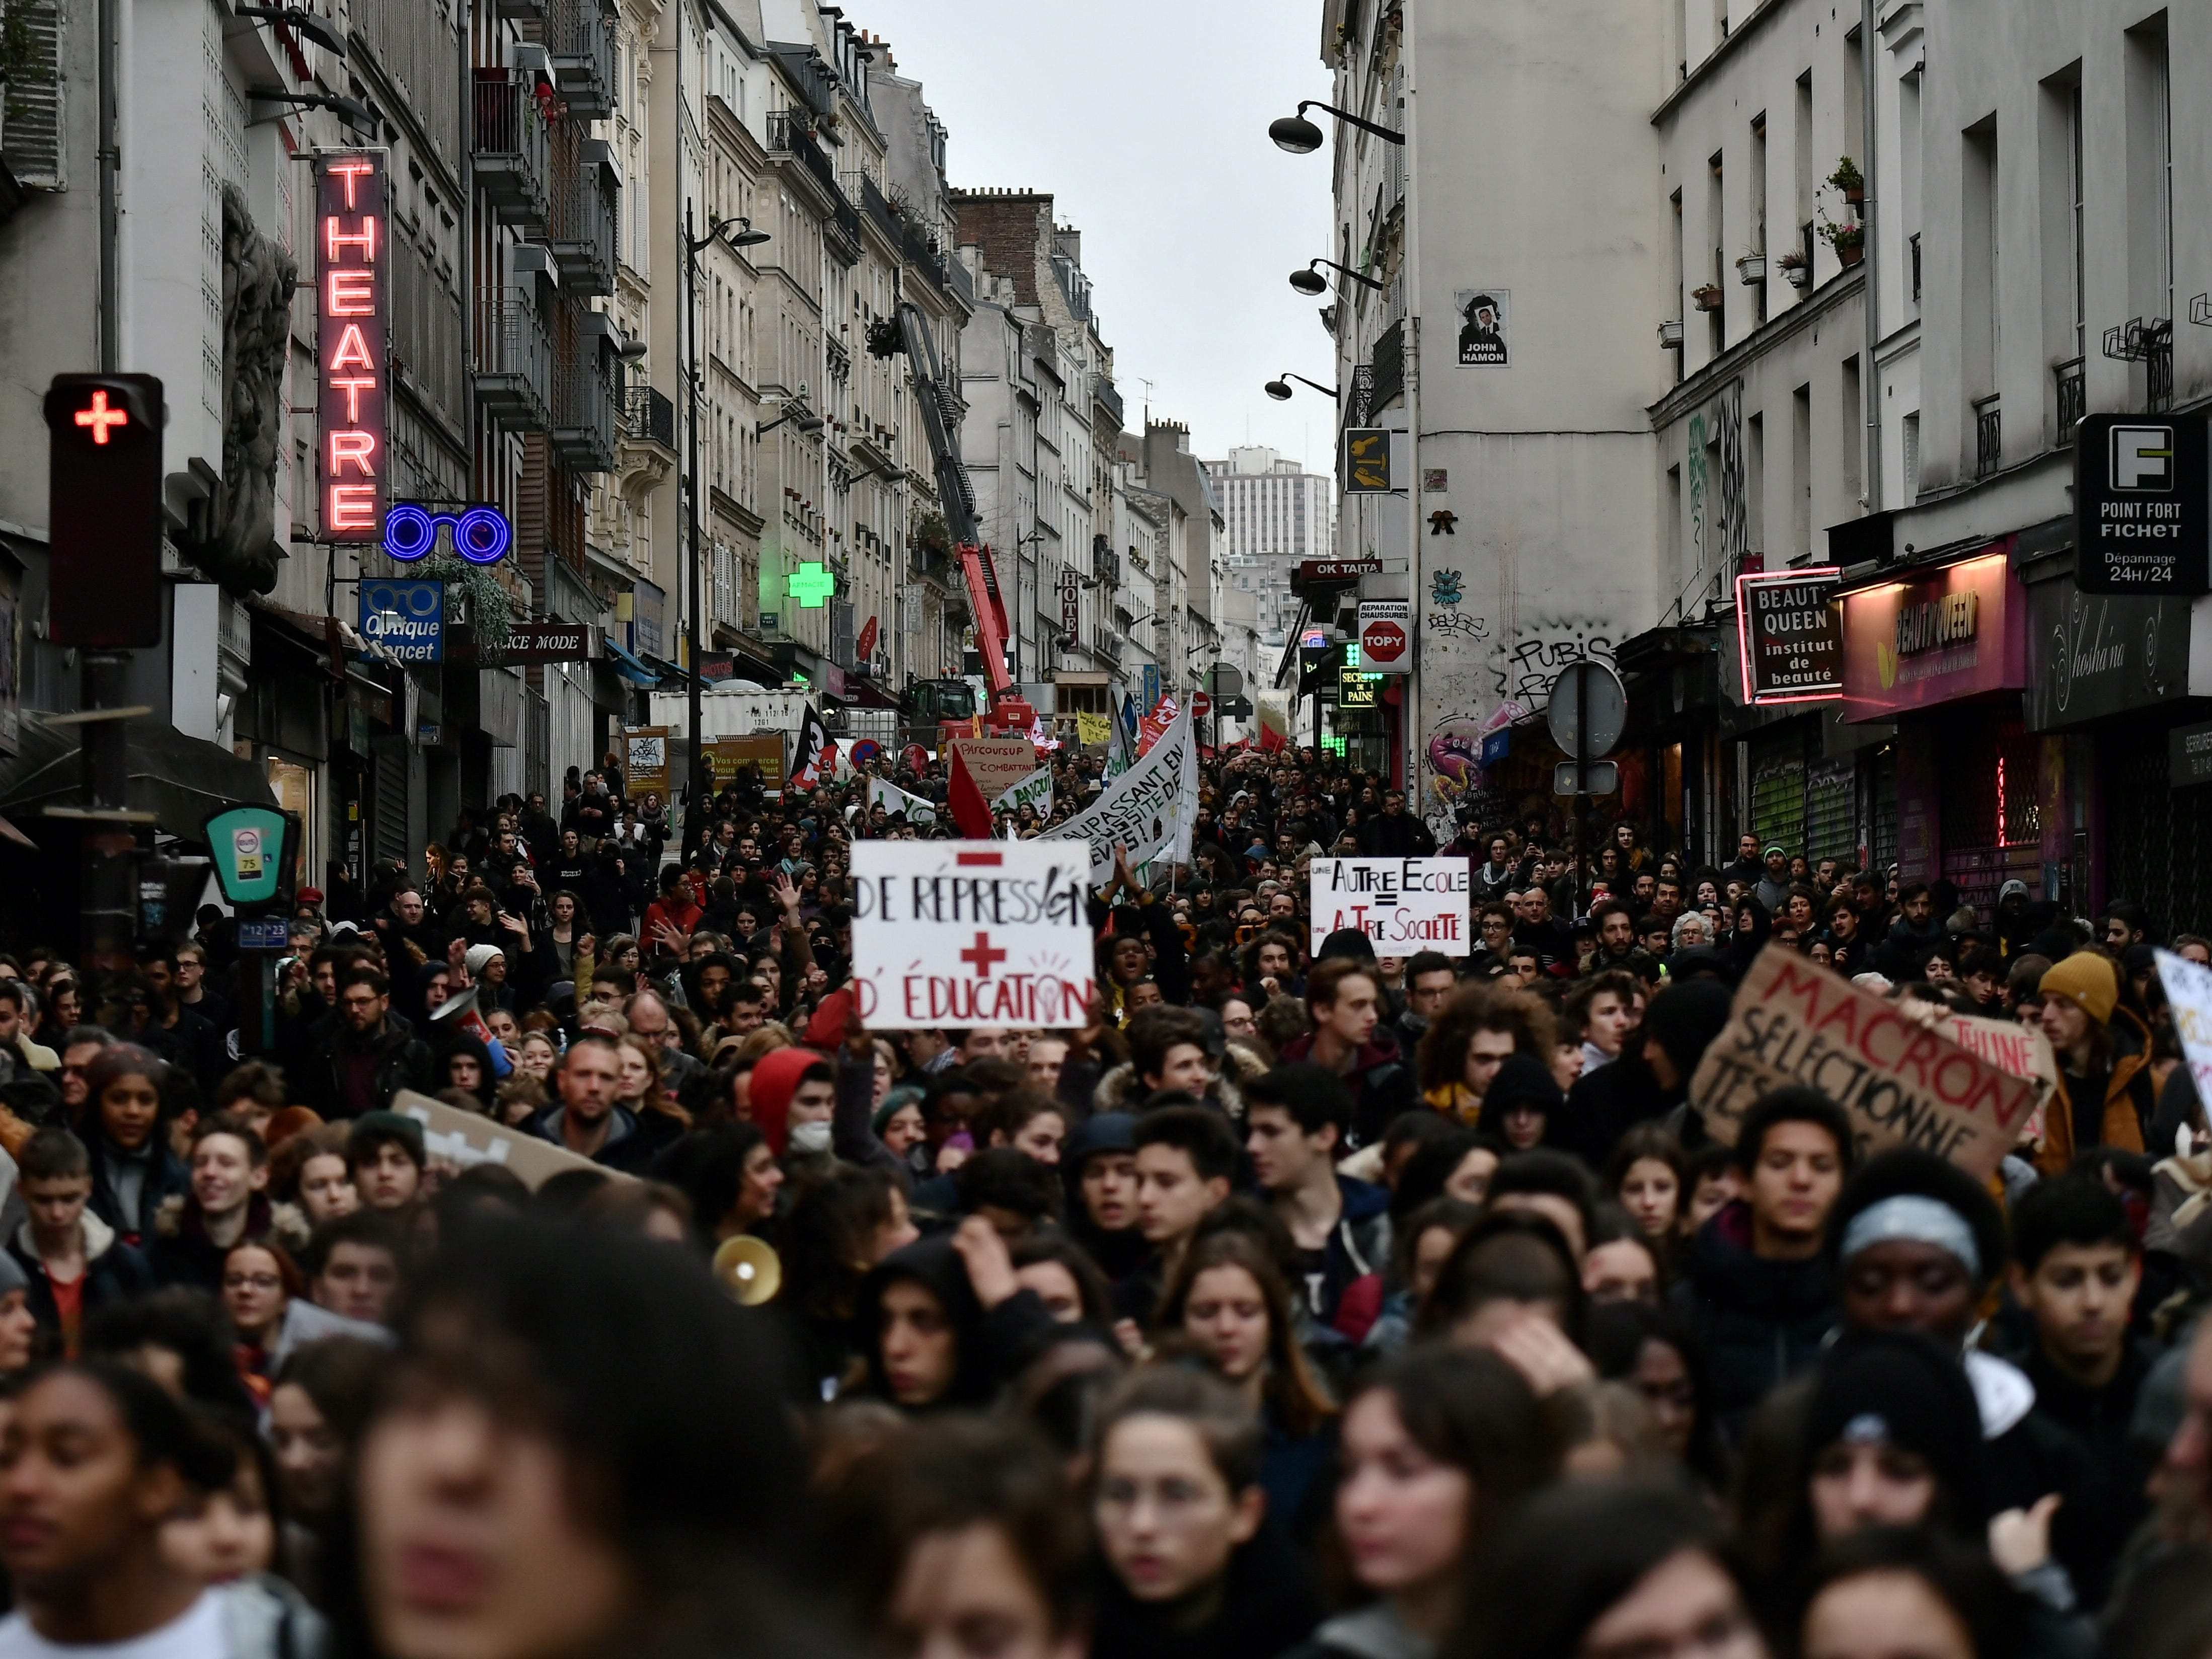 High school students hold banners during a demonstration march from Stalingrad to de la Republique in Paris, on Dec. 7, 2018 in protest of education reforms that include stricter university entrance requirements.